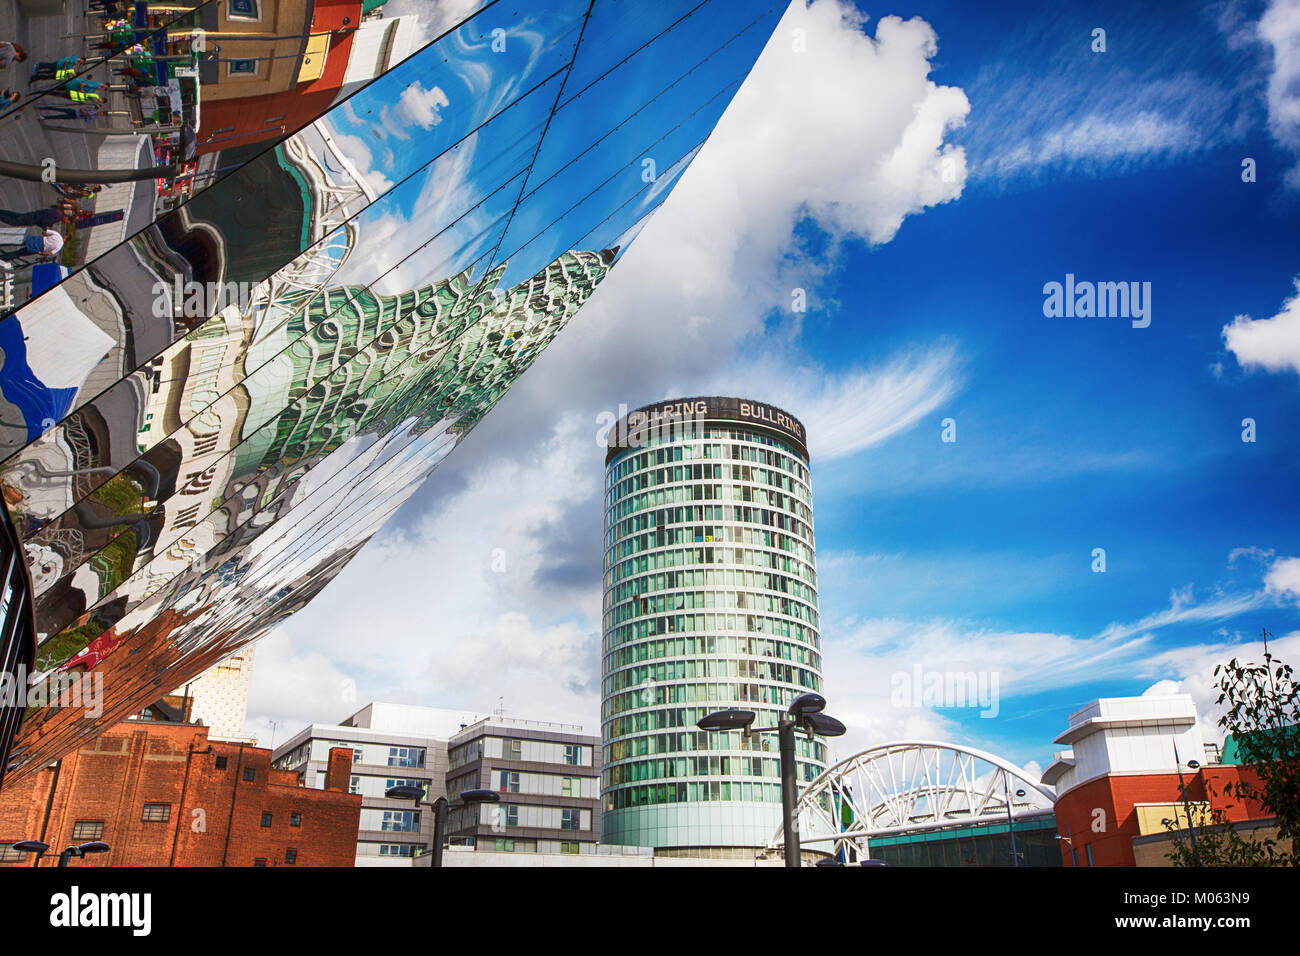 Birmingham New Street Station, looking towards the Bull Ring, Birmingham, UK. - Stock Image